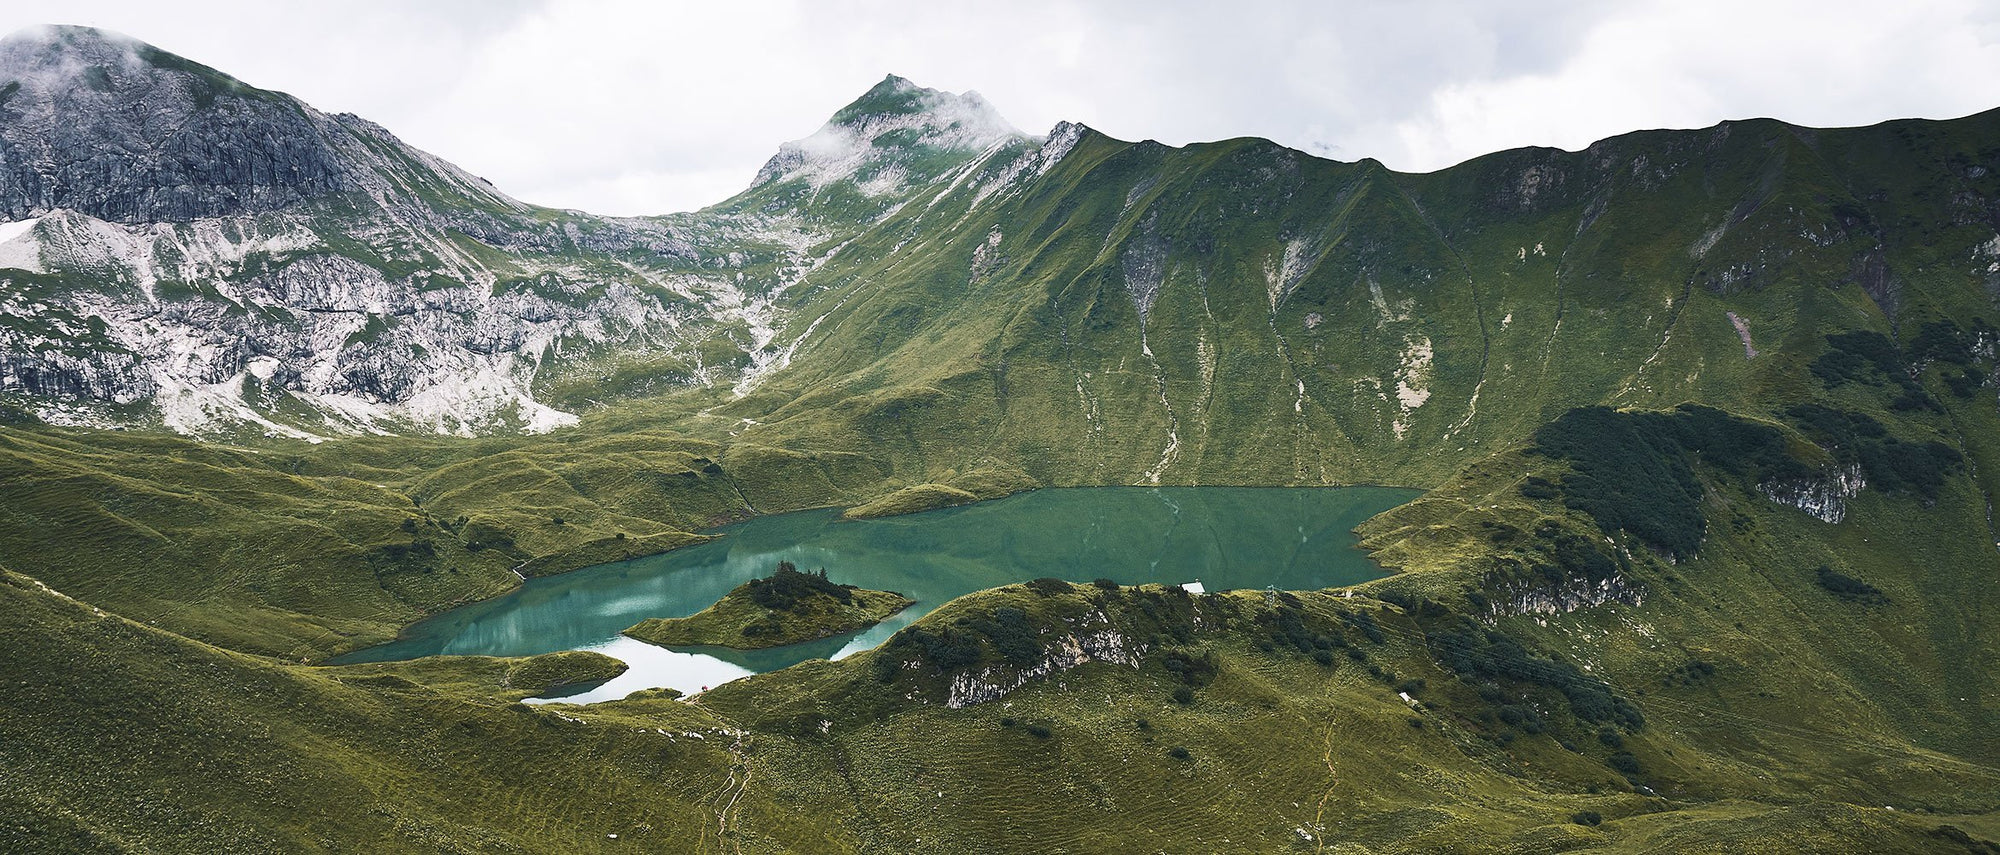 Hiking to Lake Schrecksee in Germany's Allgäu Alps | WildBounds